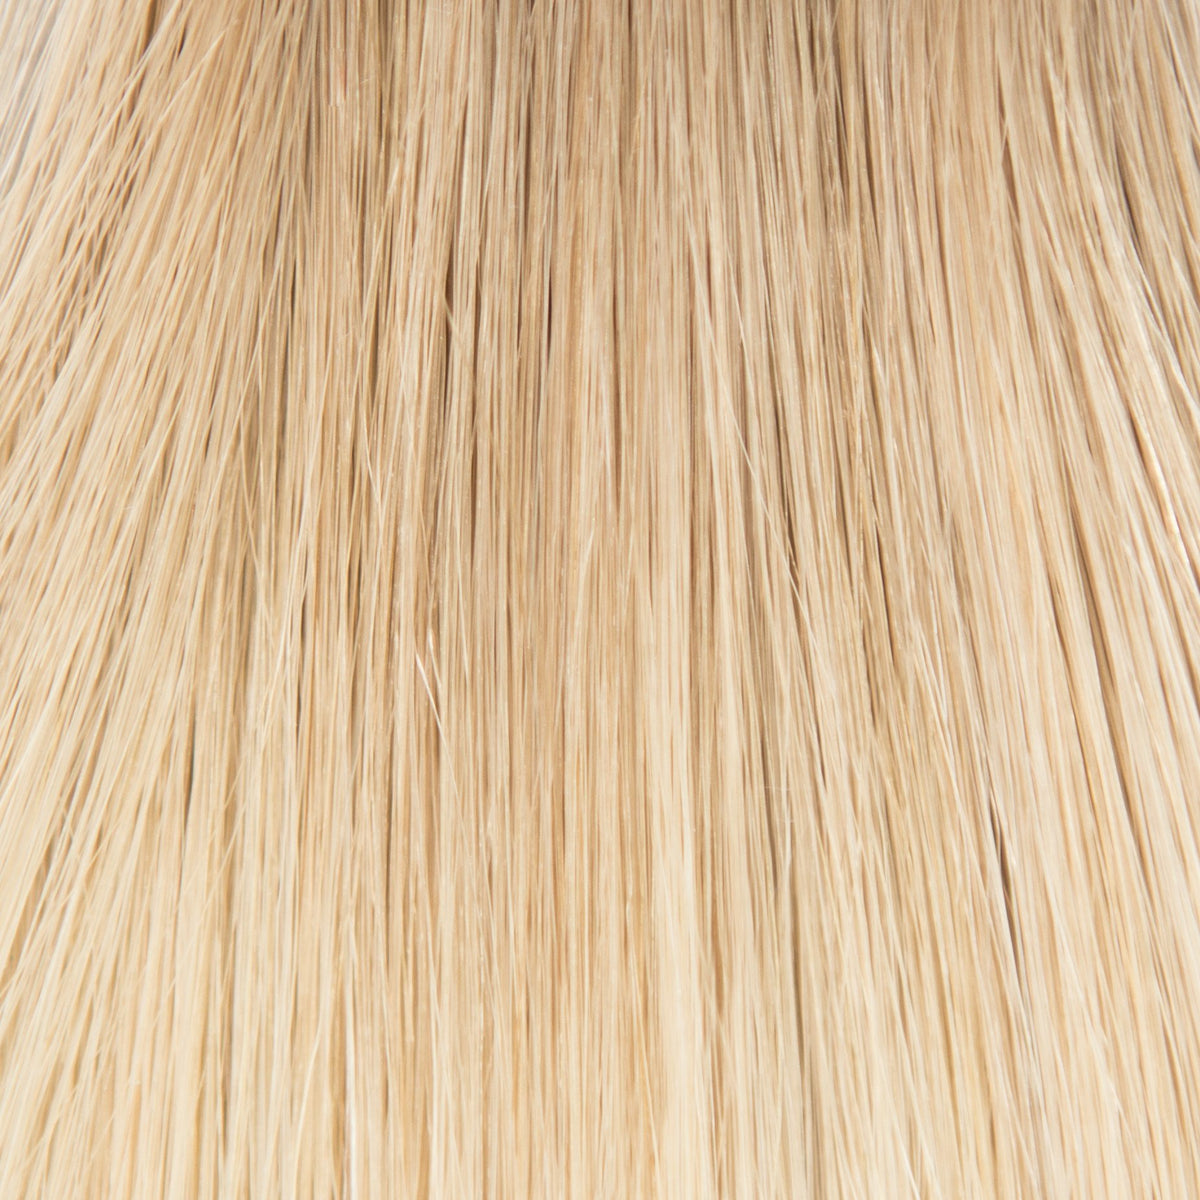 Laced Hair Keratin Bond Extensions Rooted #8/D16/22 (Rooted Buttercream)